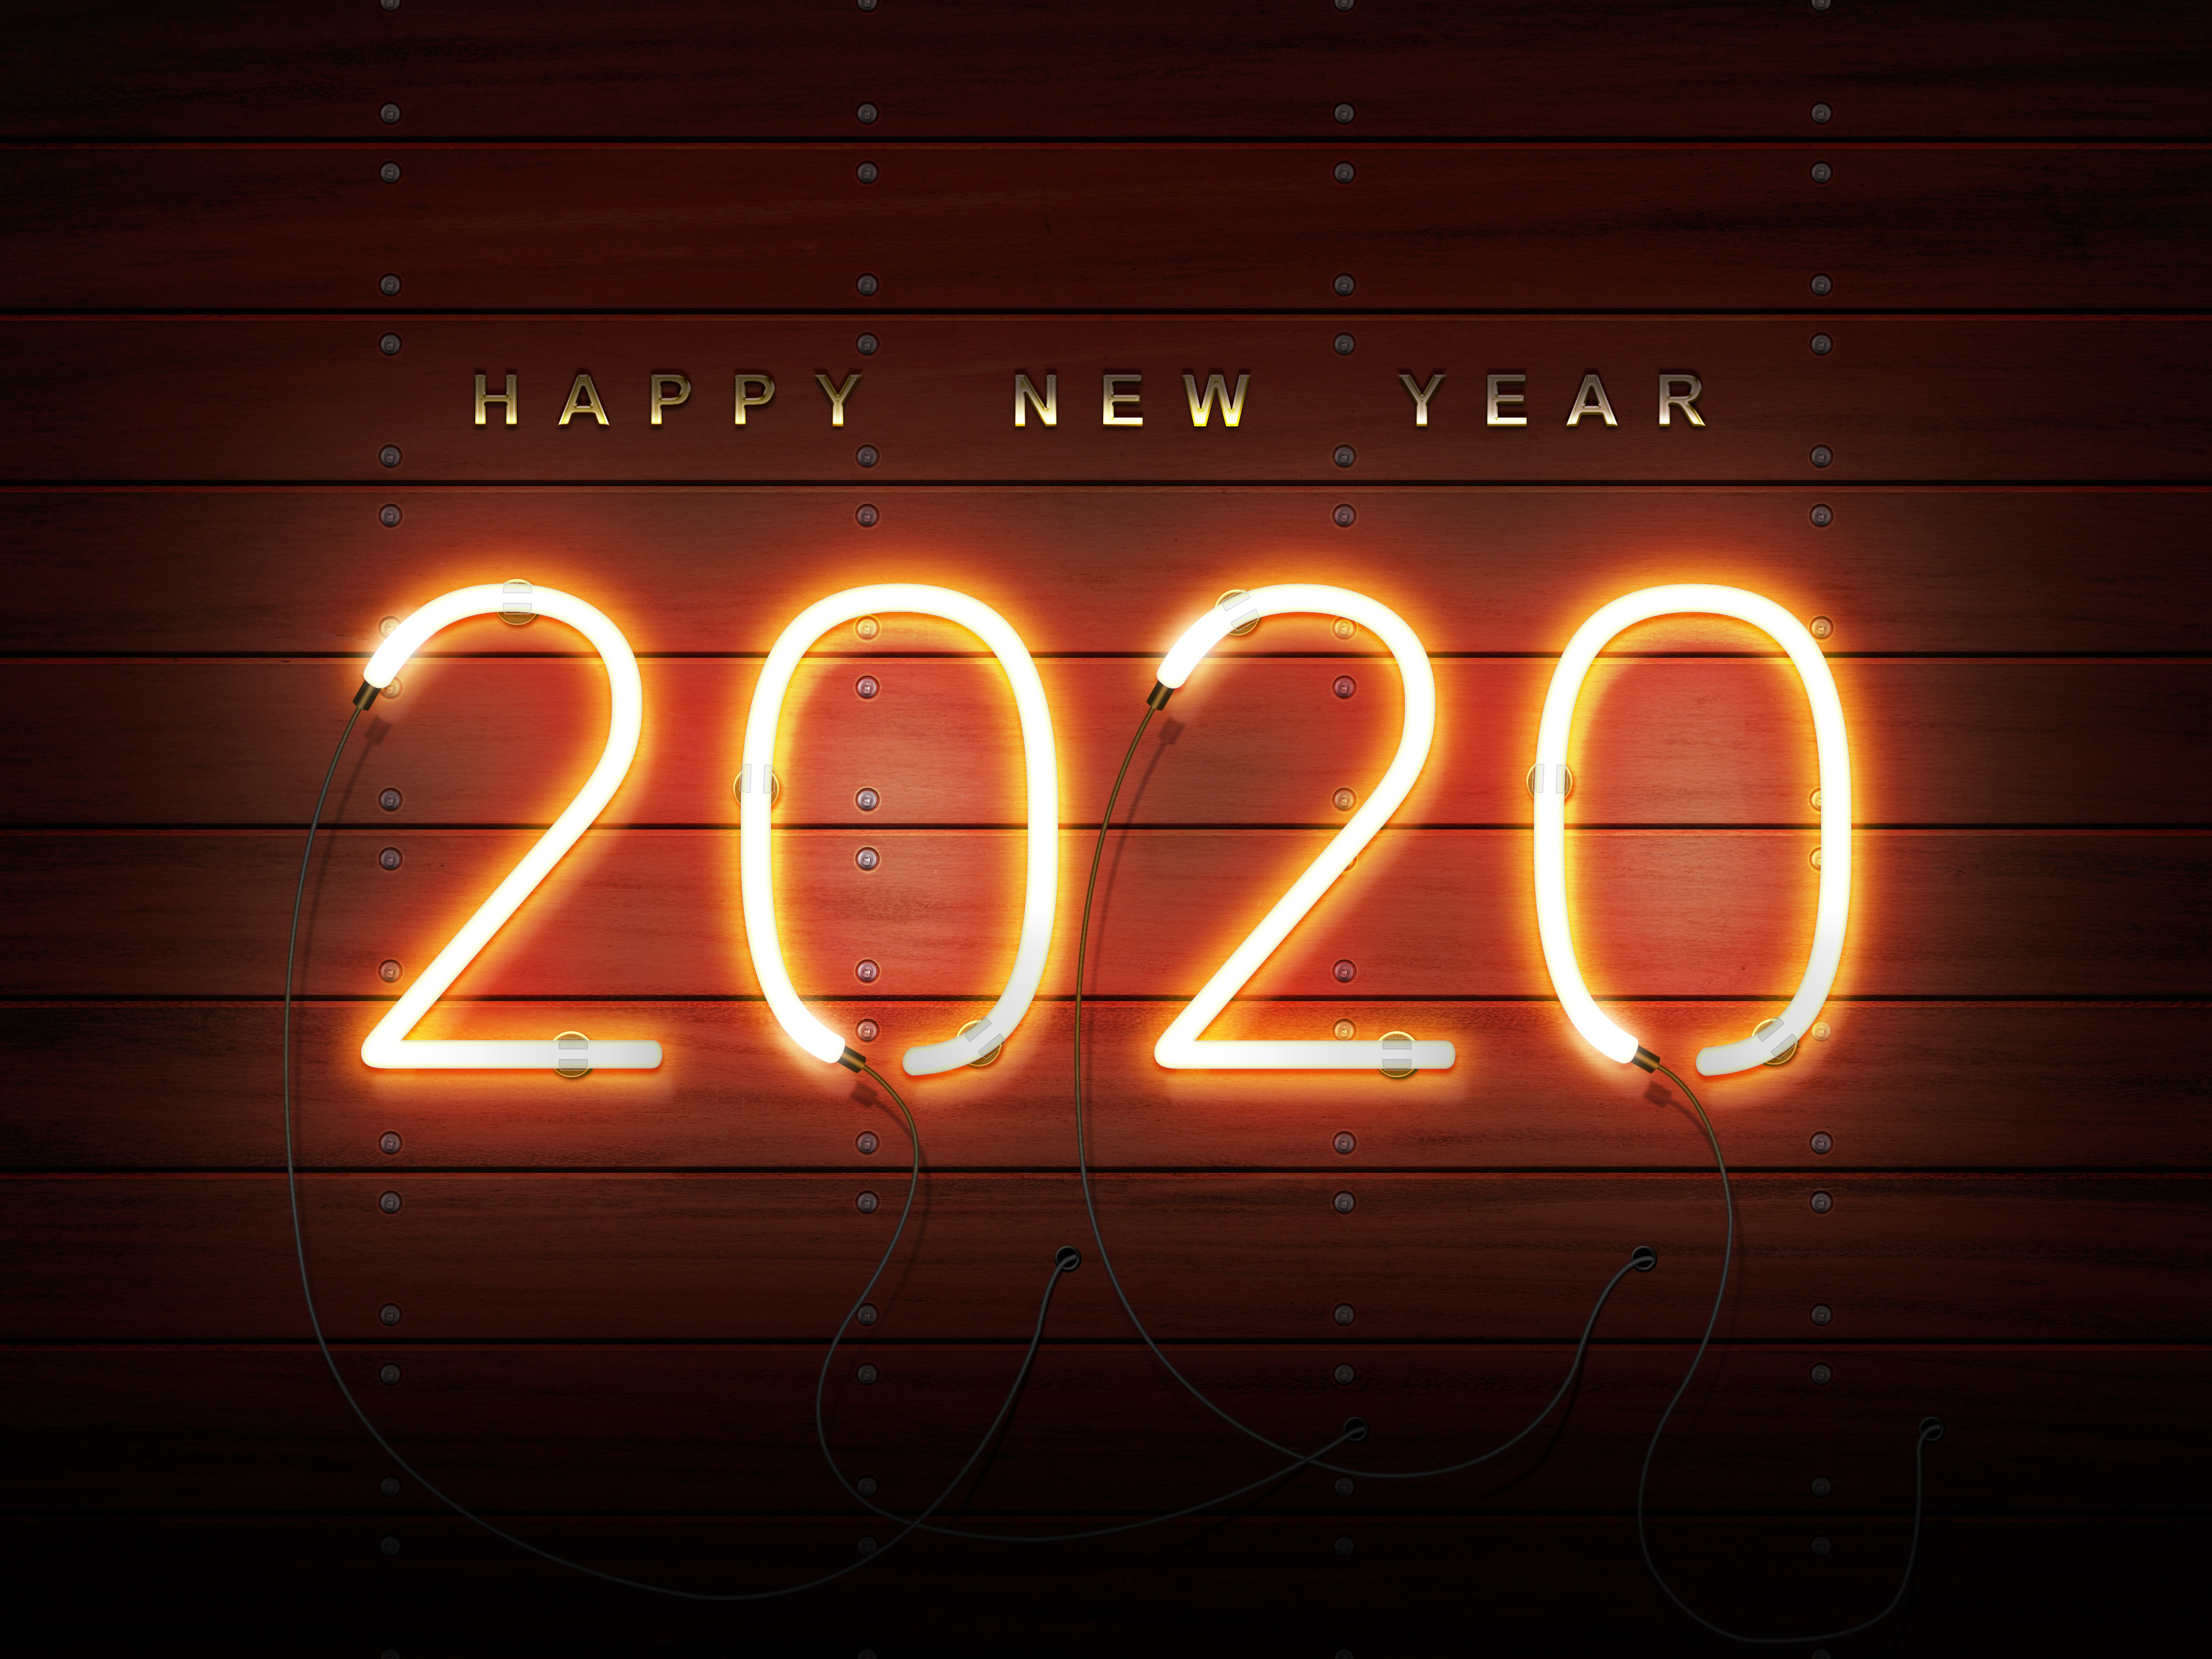 Happy New Year 2020 Hd Celebrations 4k Wallpapers Images